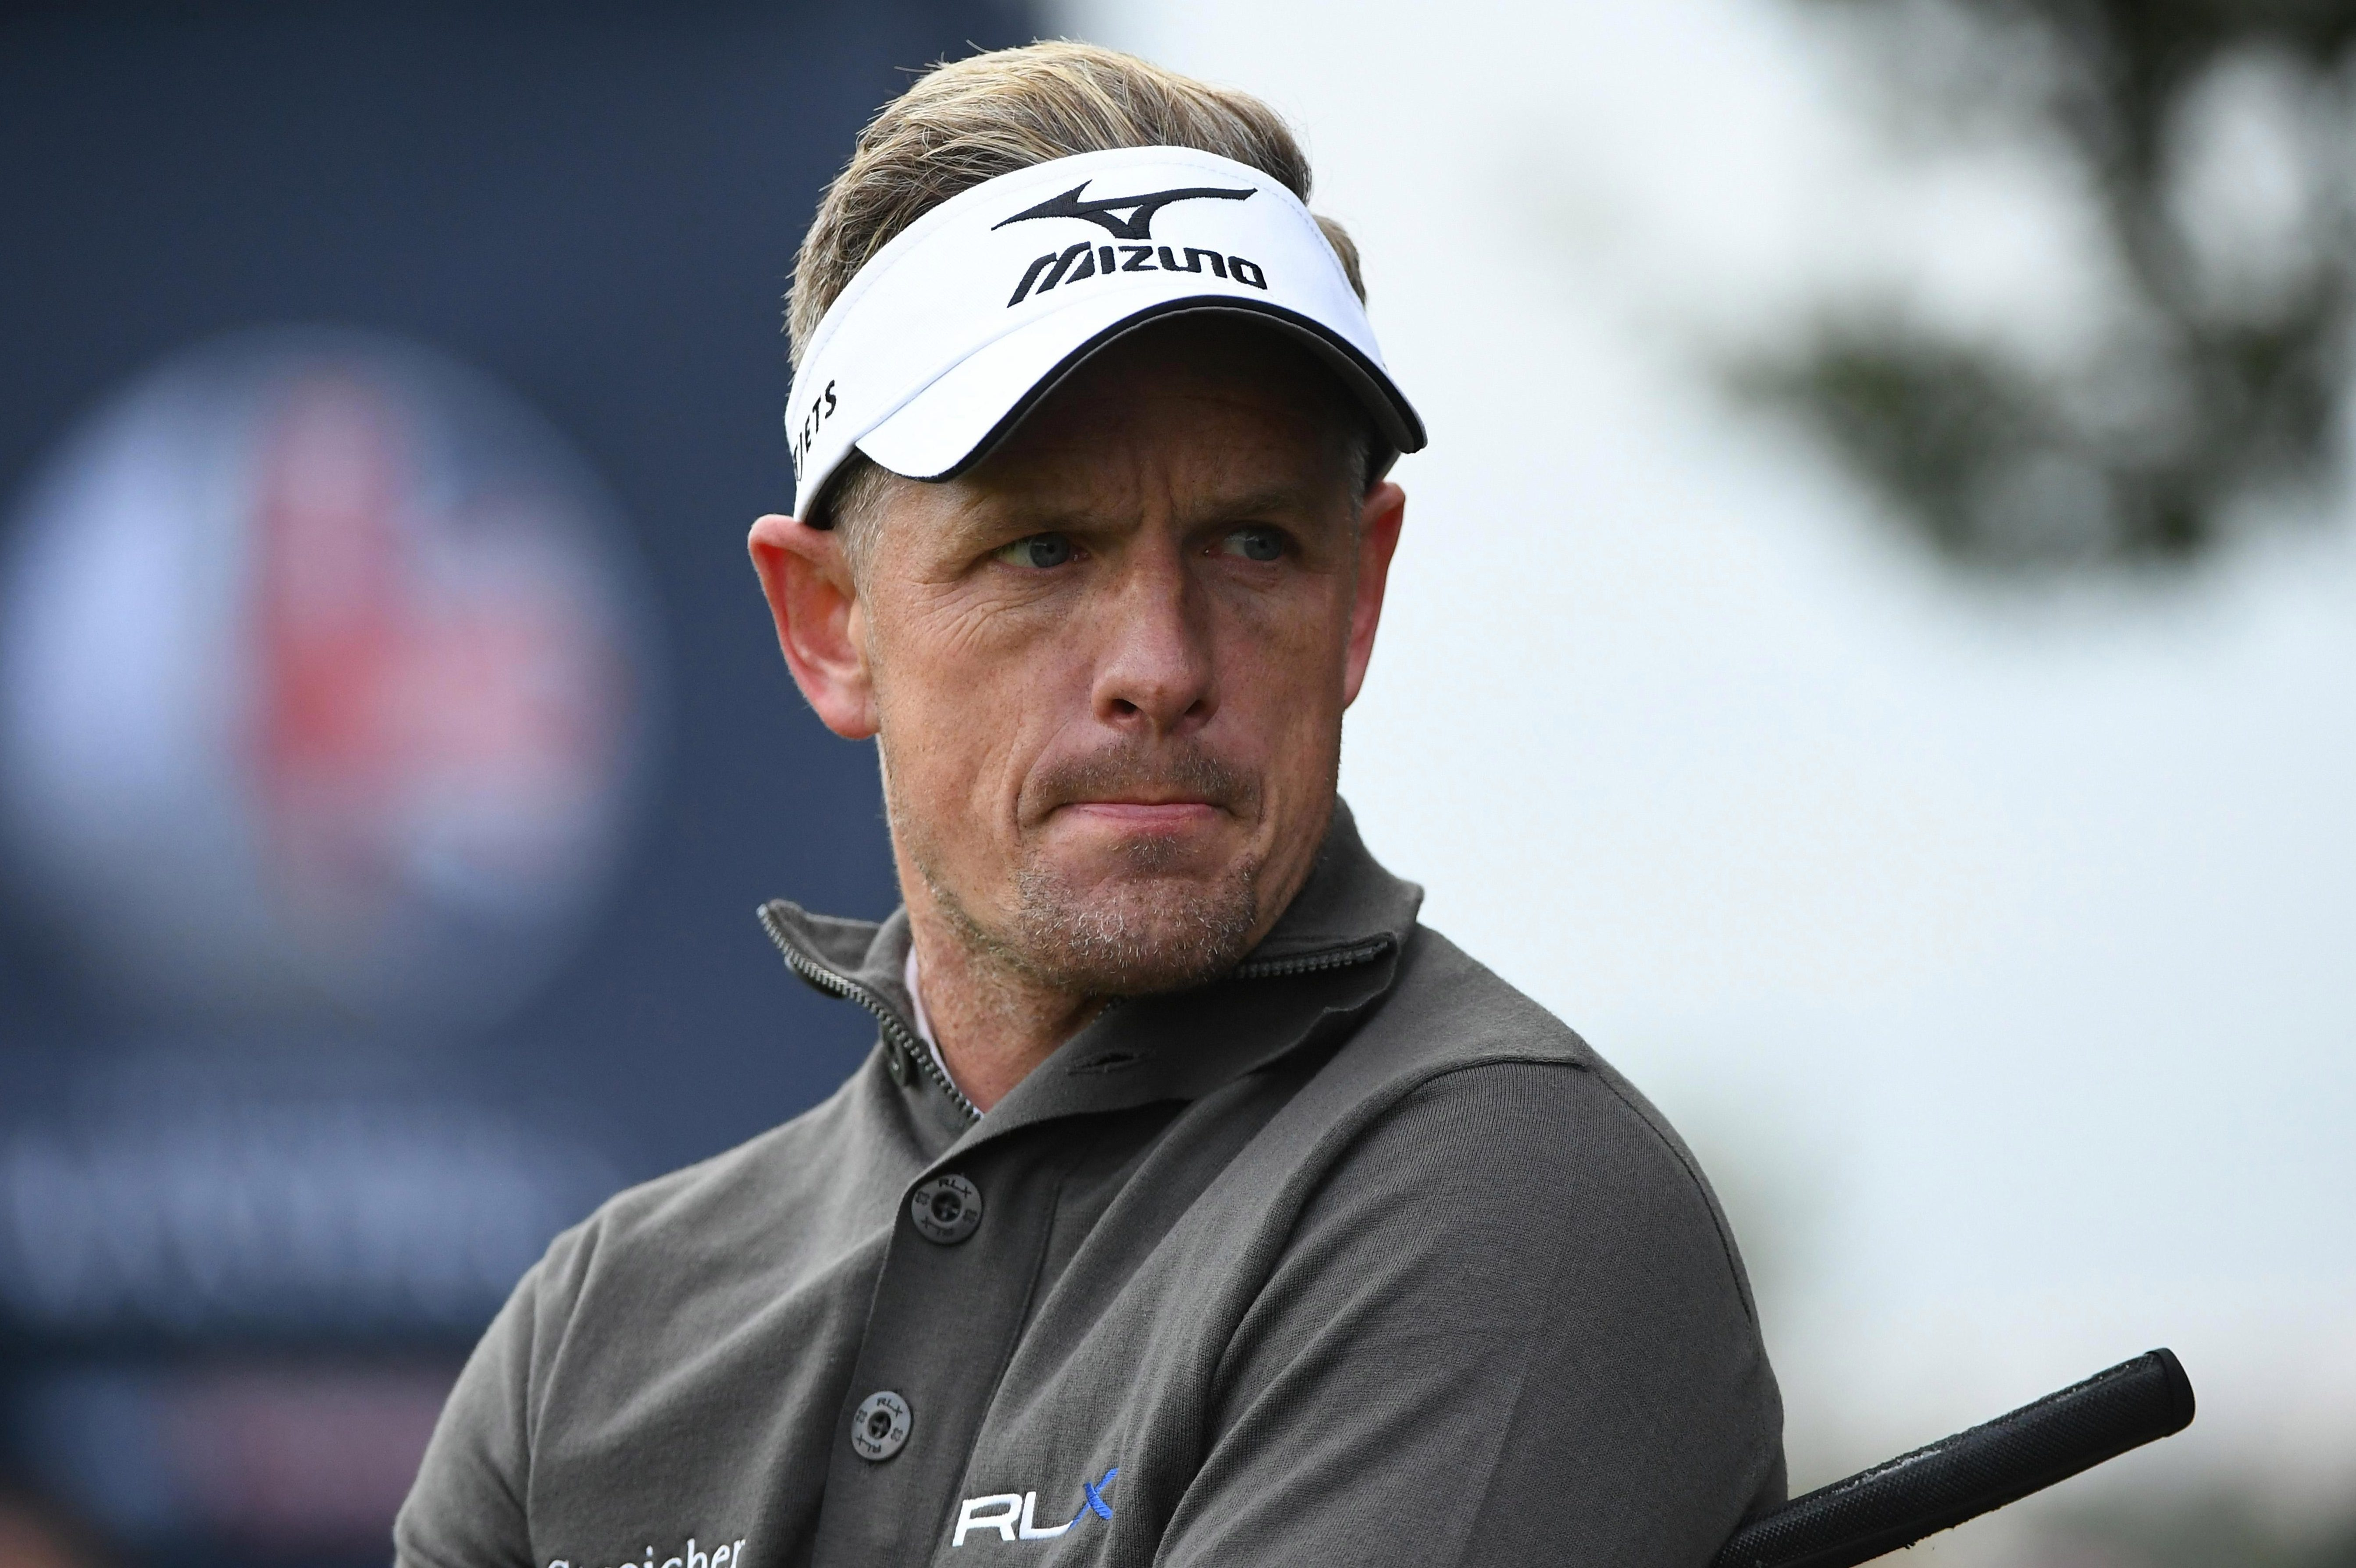 Luke Donald was world No1 for over 40 weeks in 2011